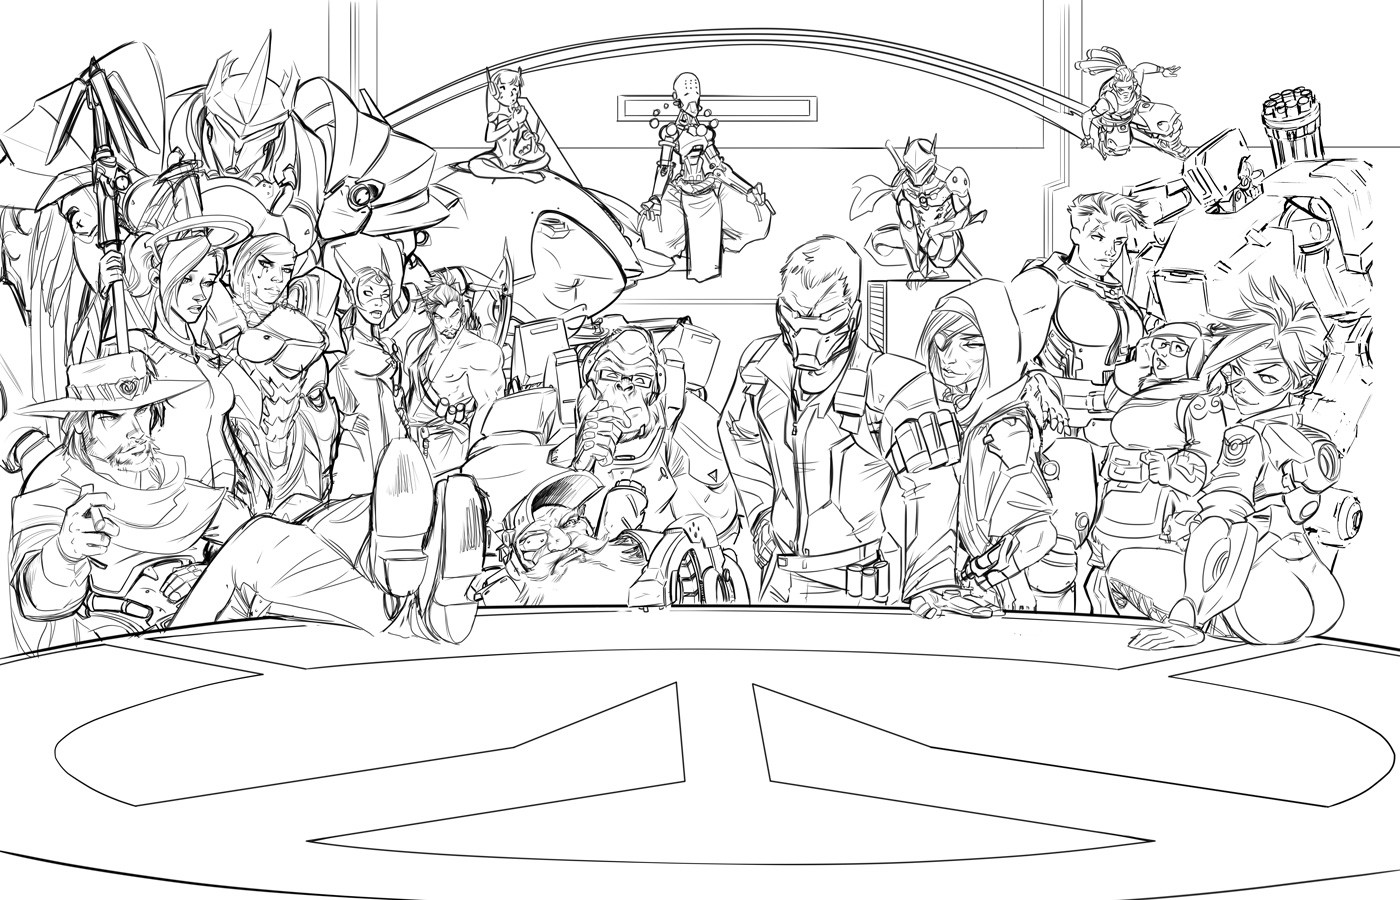 Comfort love and adam withers overwatch for Overwatch coloring pages